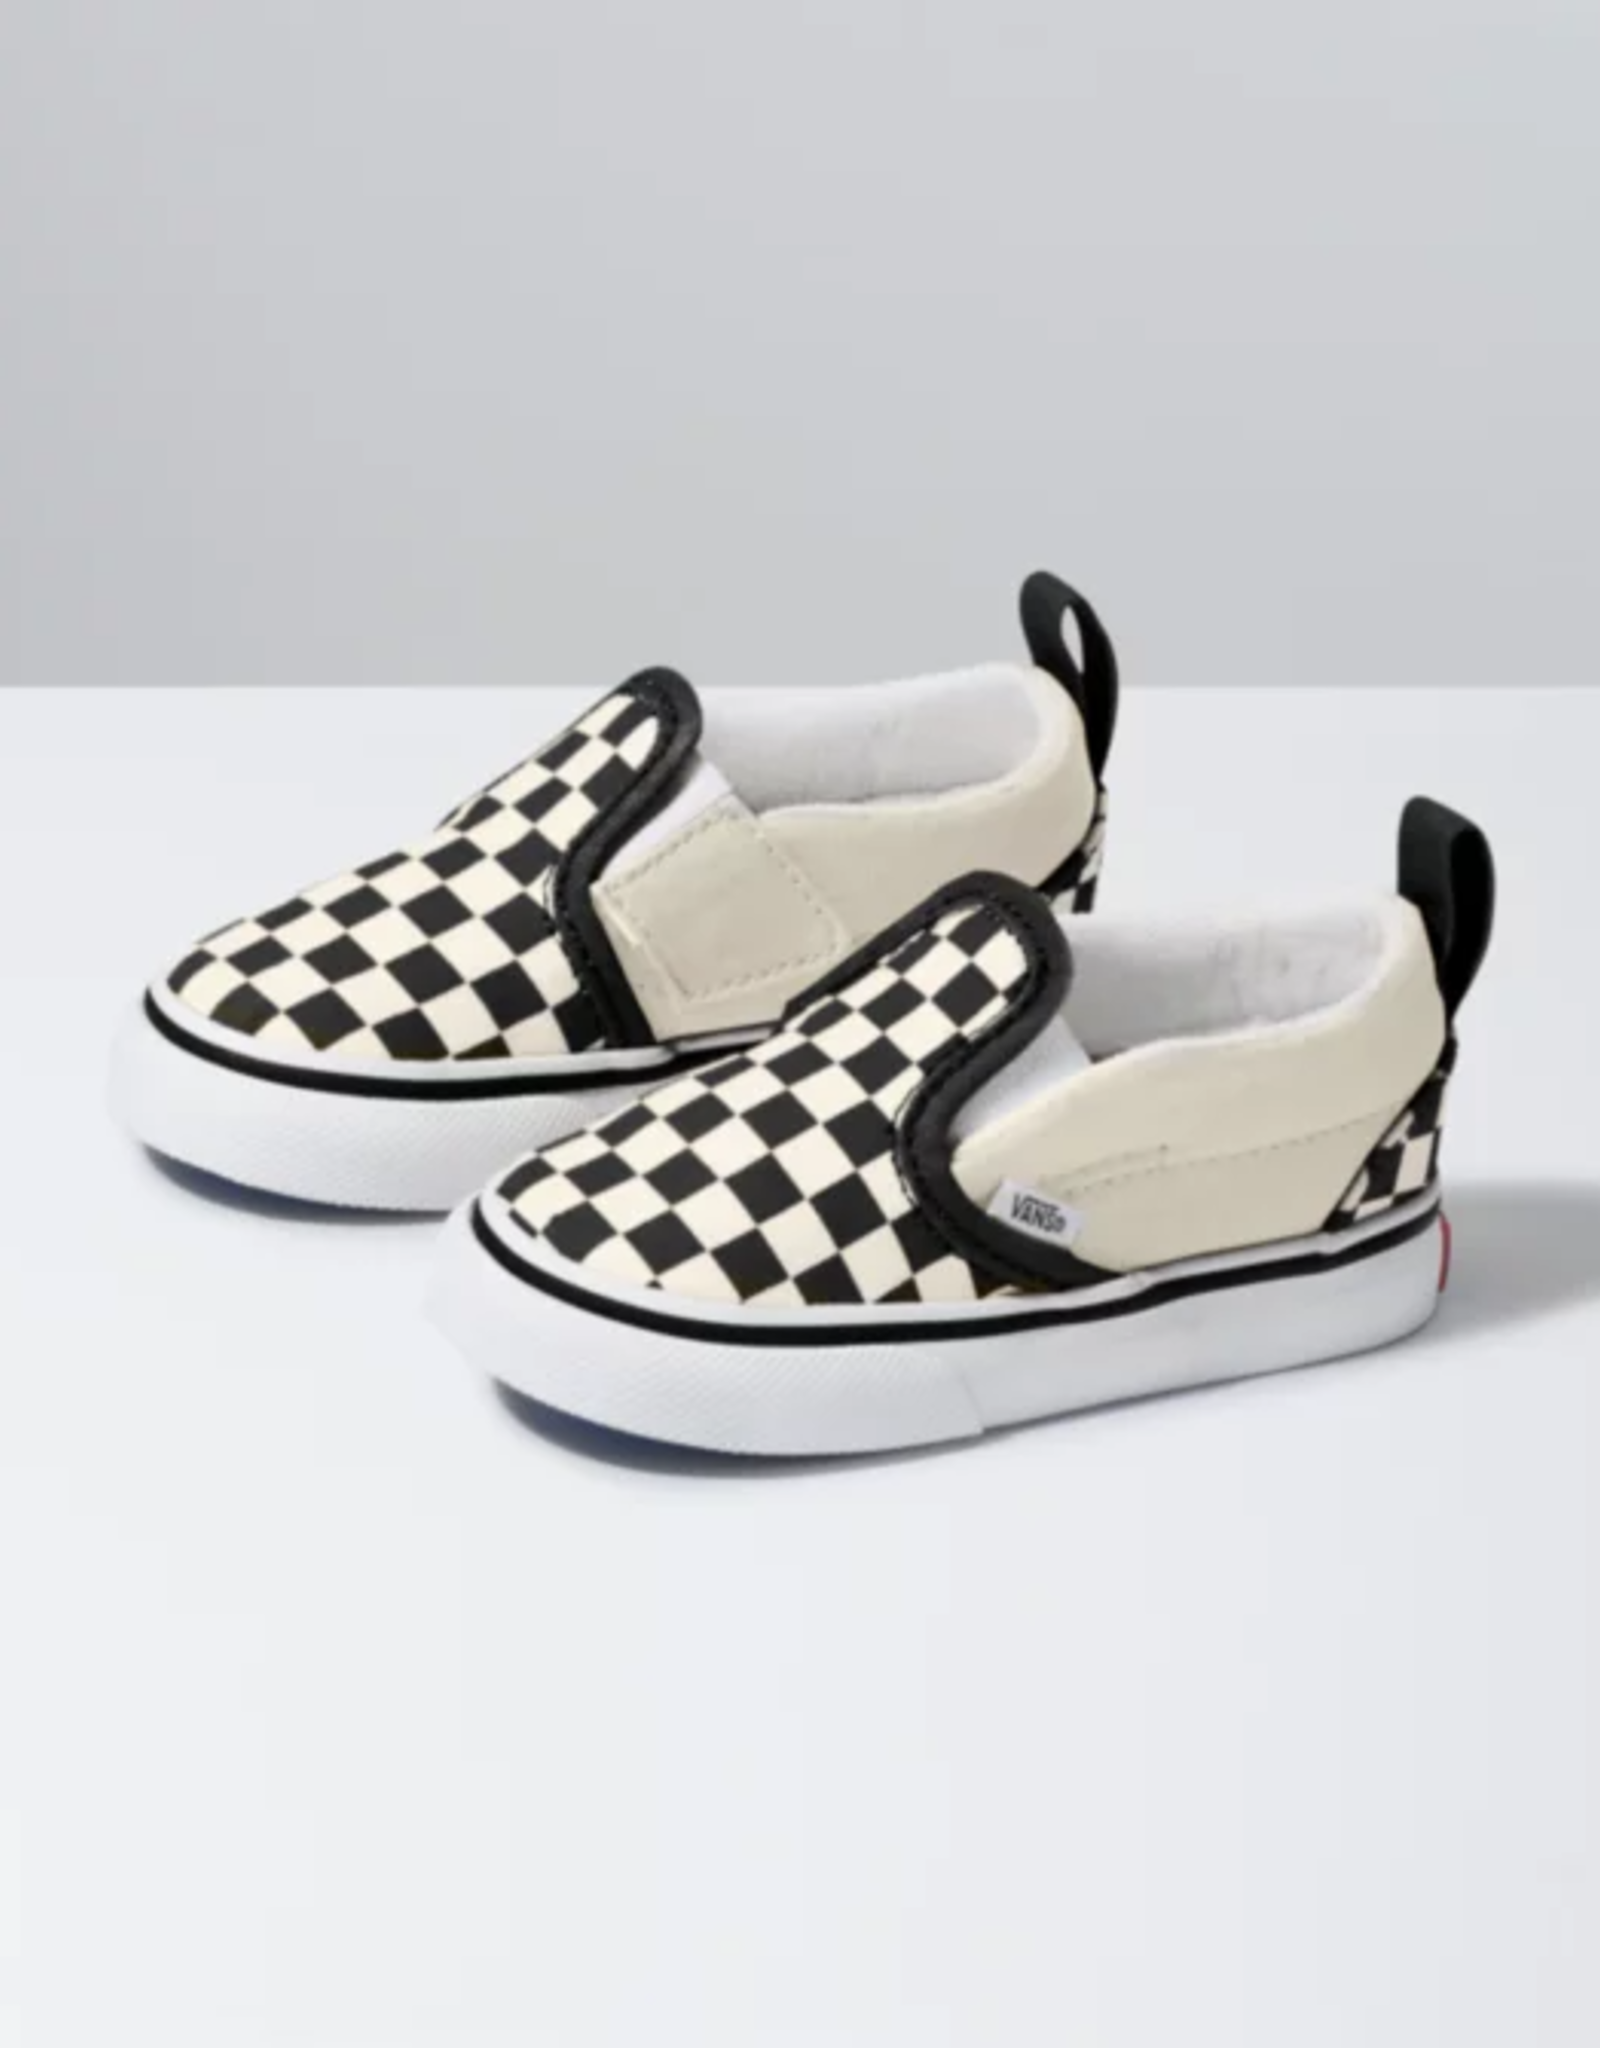 Vans Toddler Asher Checkerboard Slip On blk/wht